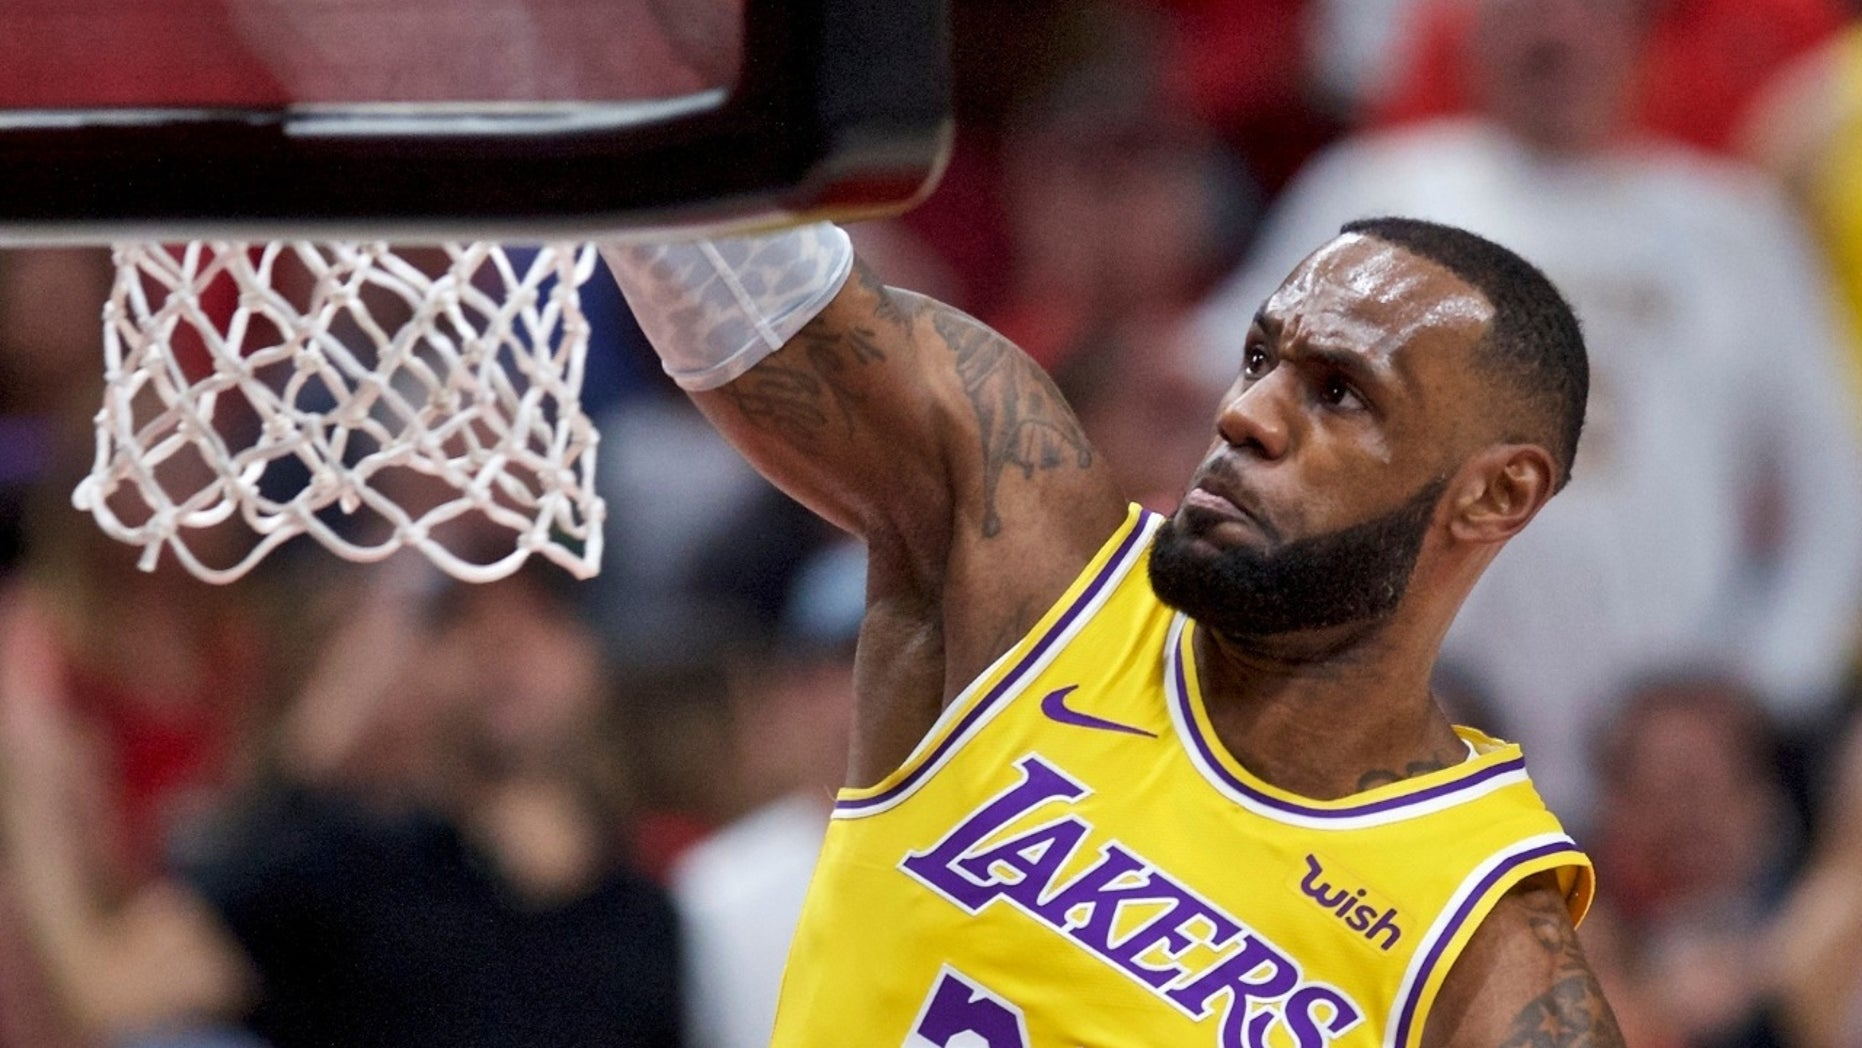 LeBron James made his debut on the Los Angeles Lakers on Thursday, Oct. 19, 2018.